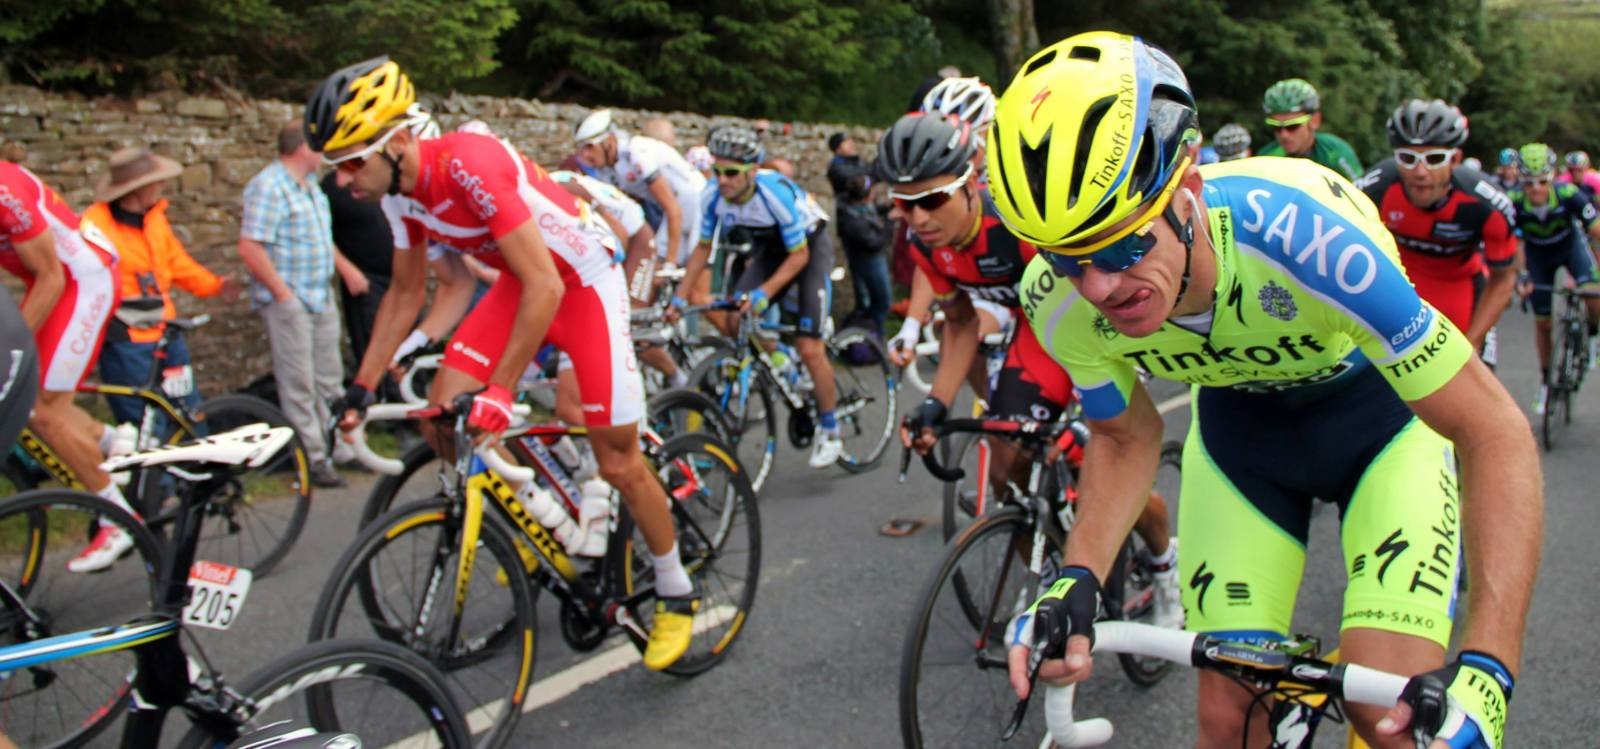 Cyclists make their way up the Cote de Buttertubs in Yorkshire for the Tour de France